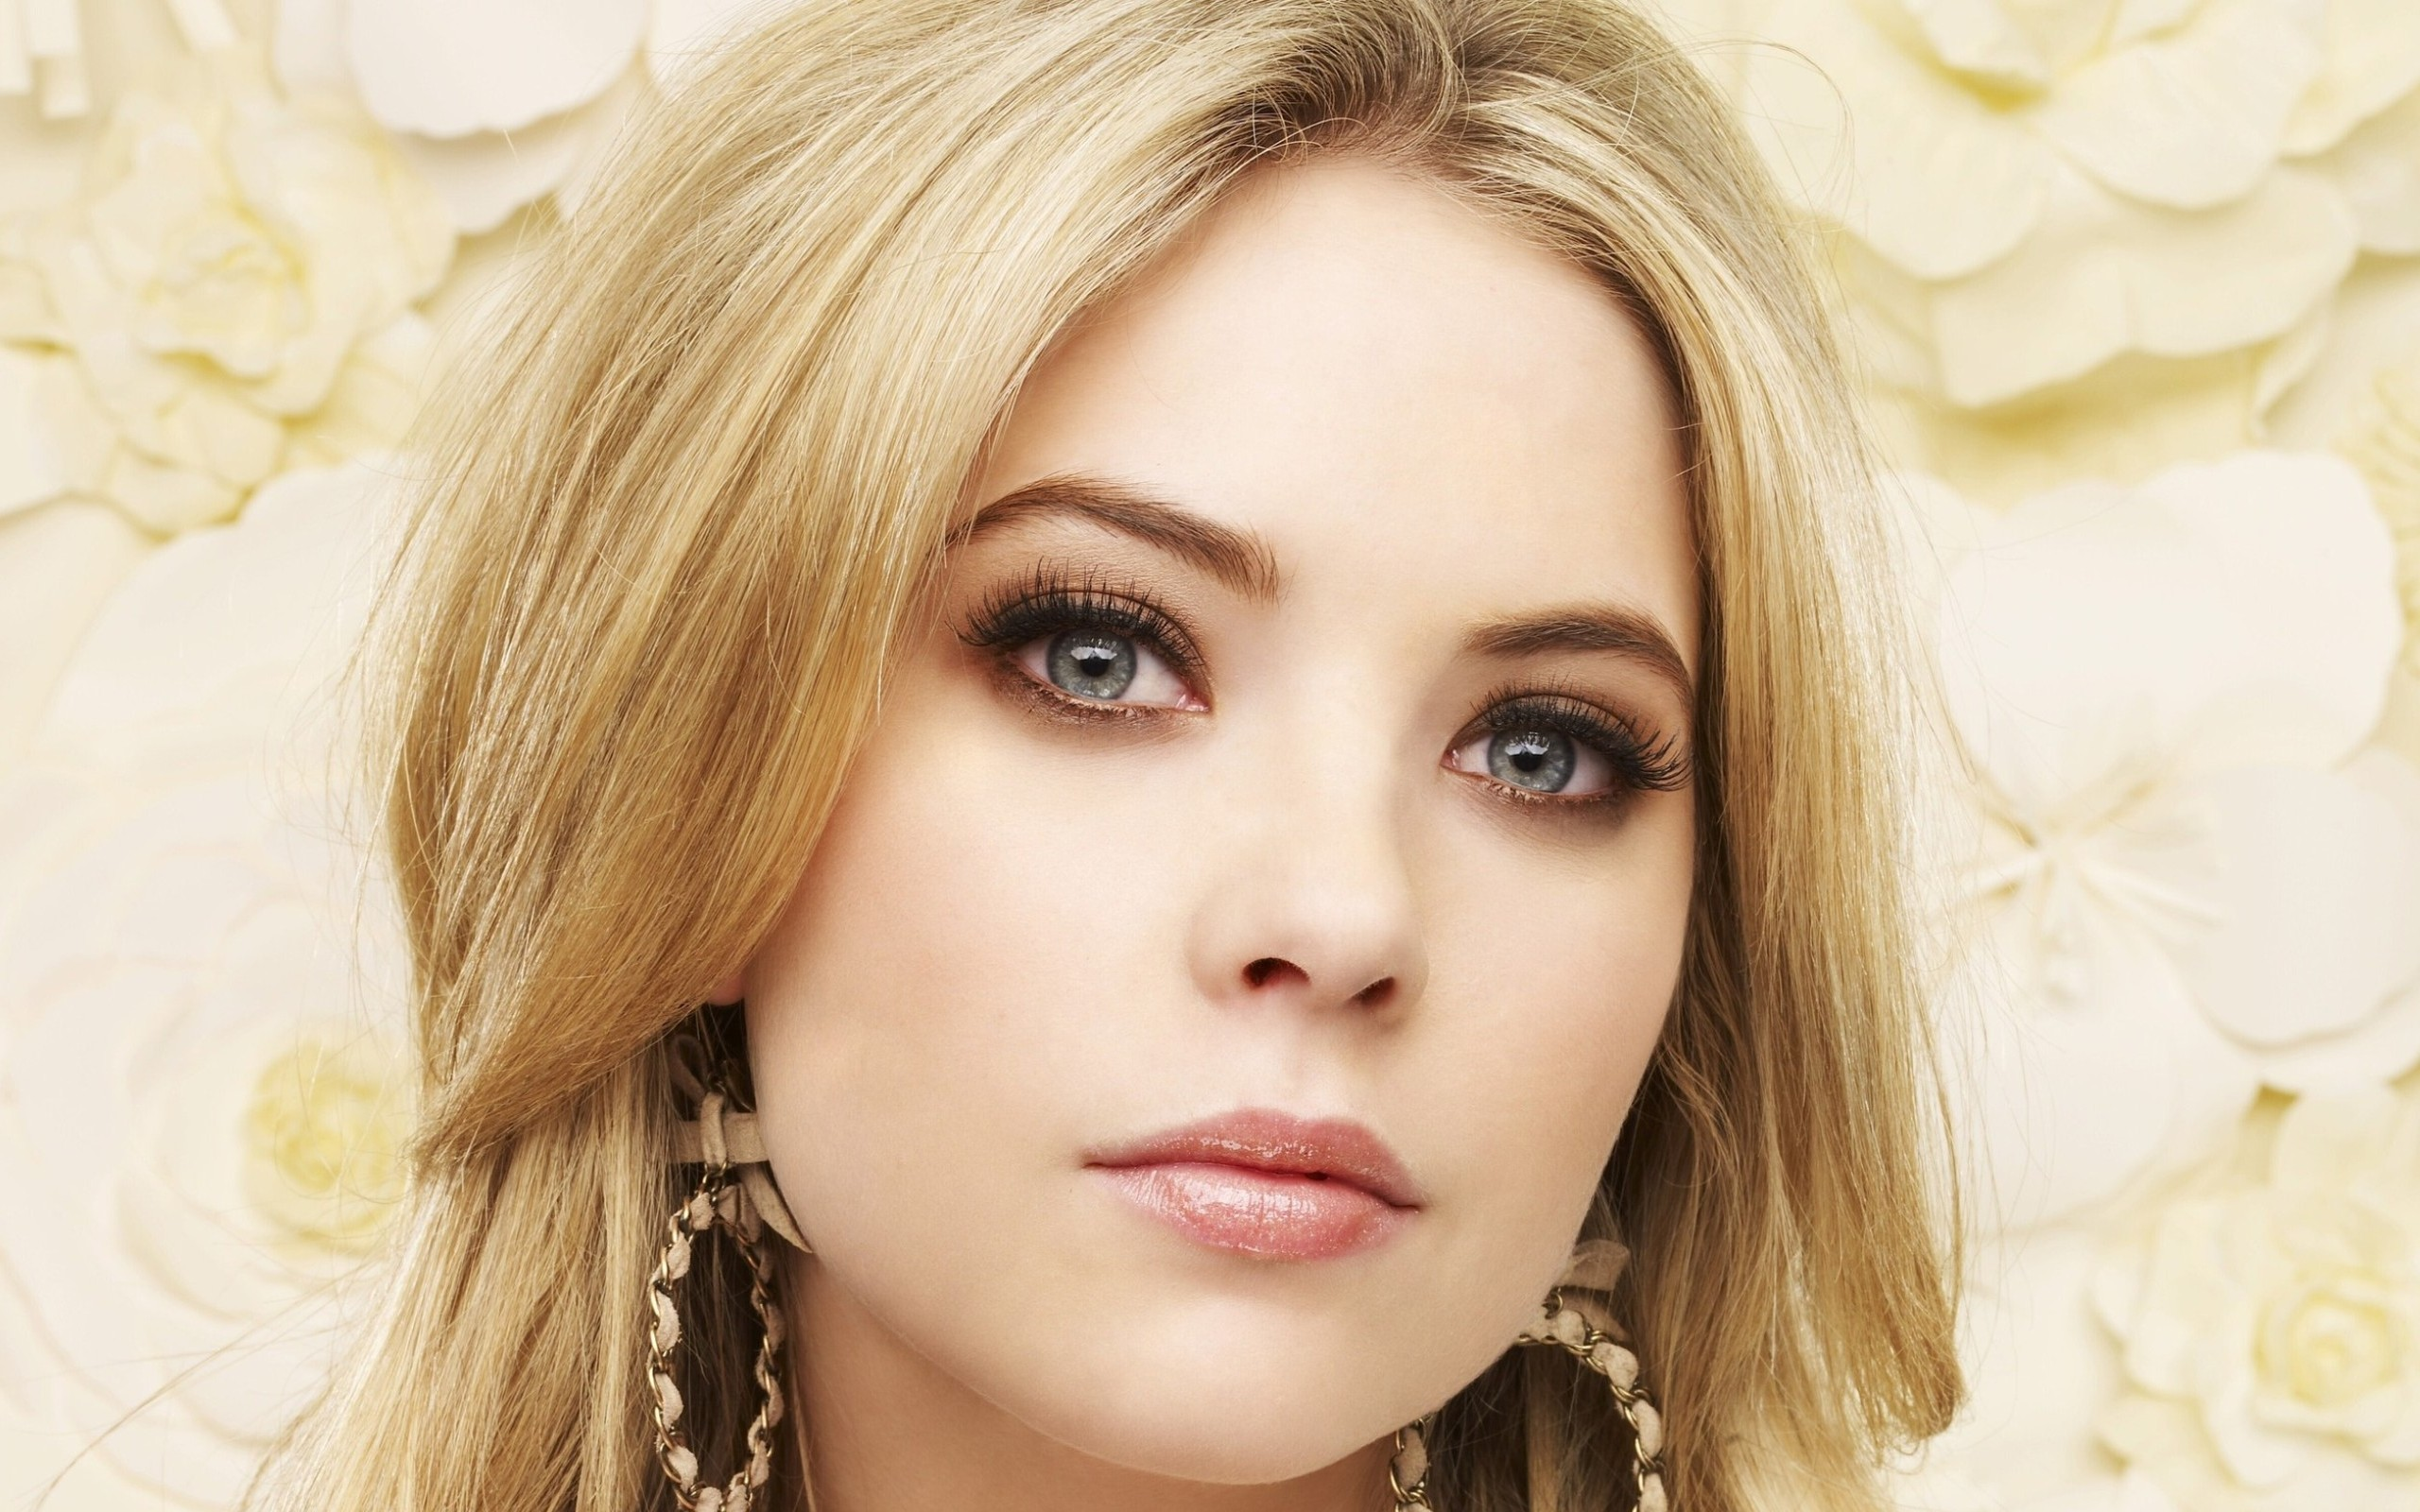 ashley benson full hd wallpaper and background image | 2560x1600